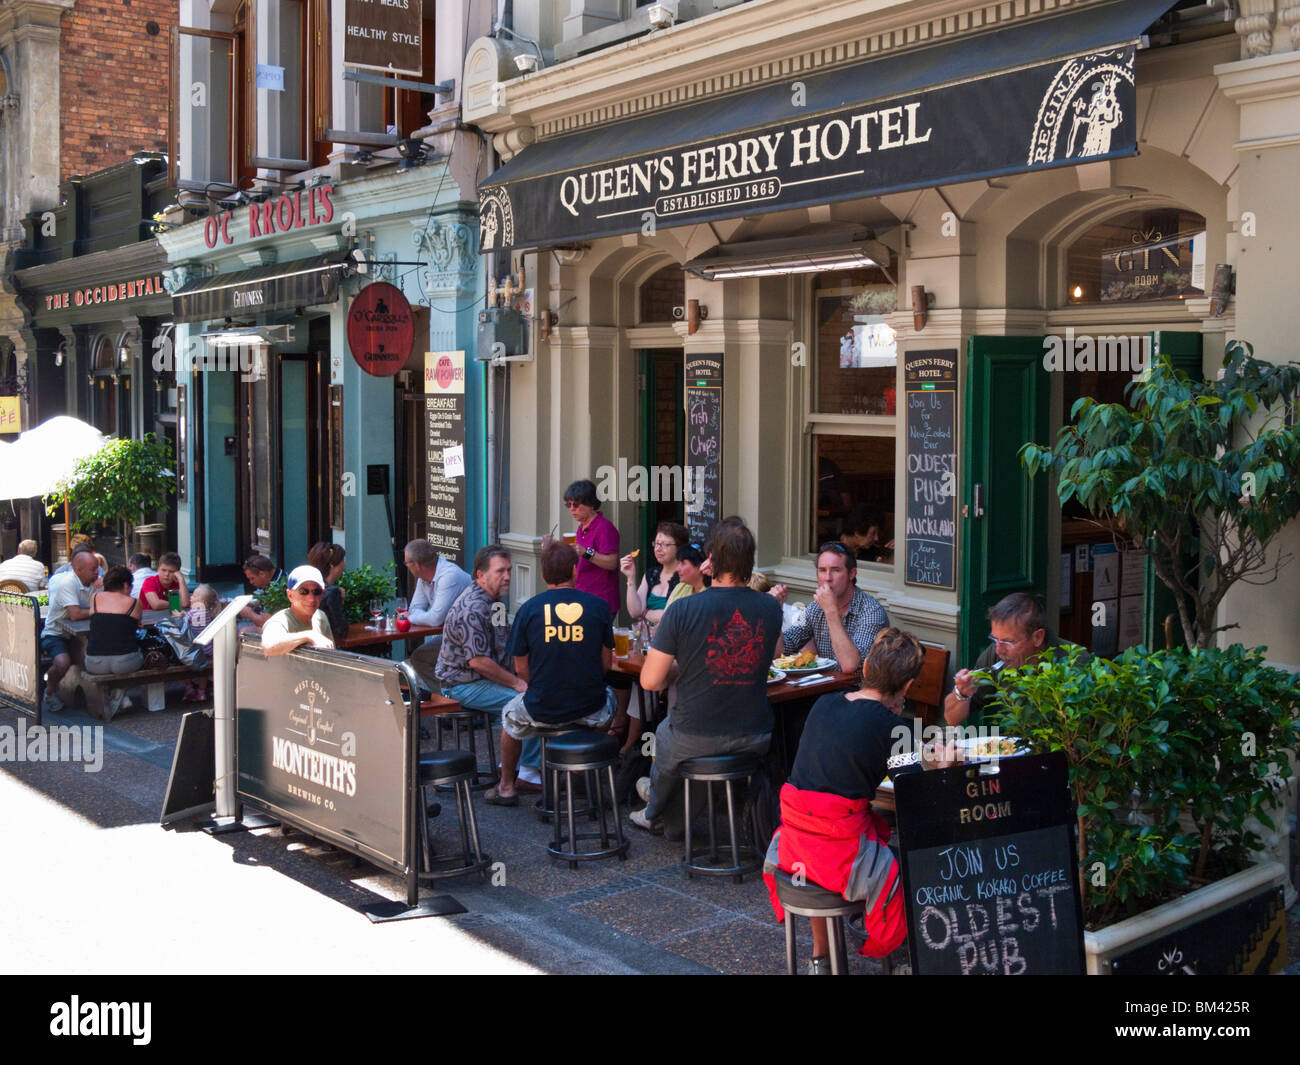 Lunchtime diners at the Queen's Ferry Hotel on Vulcan Lane. Auckland, North Island, New Zealand Stock Photo